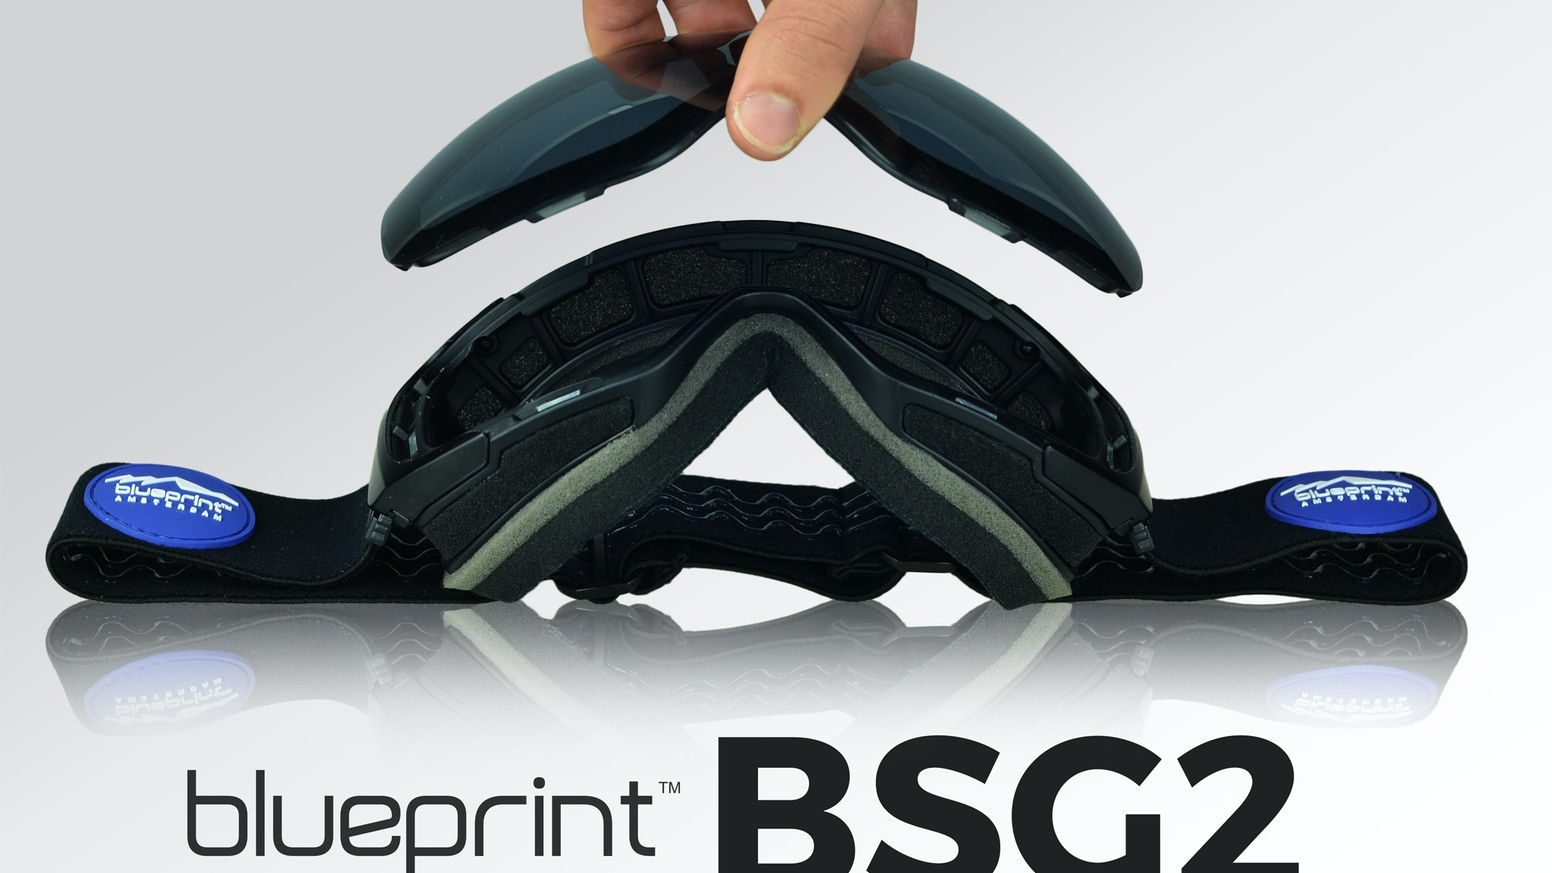 The BSG2 is an all weather and top quality snow goggle featuring instantly replaceable magnetic lenses and an unbreakable frame.